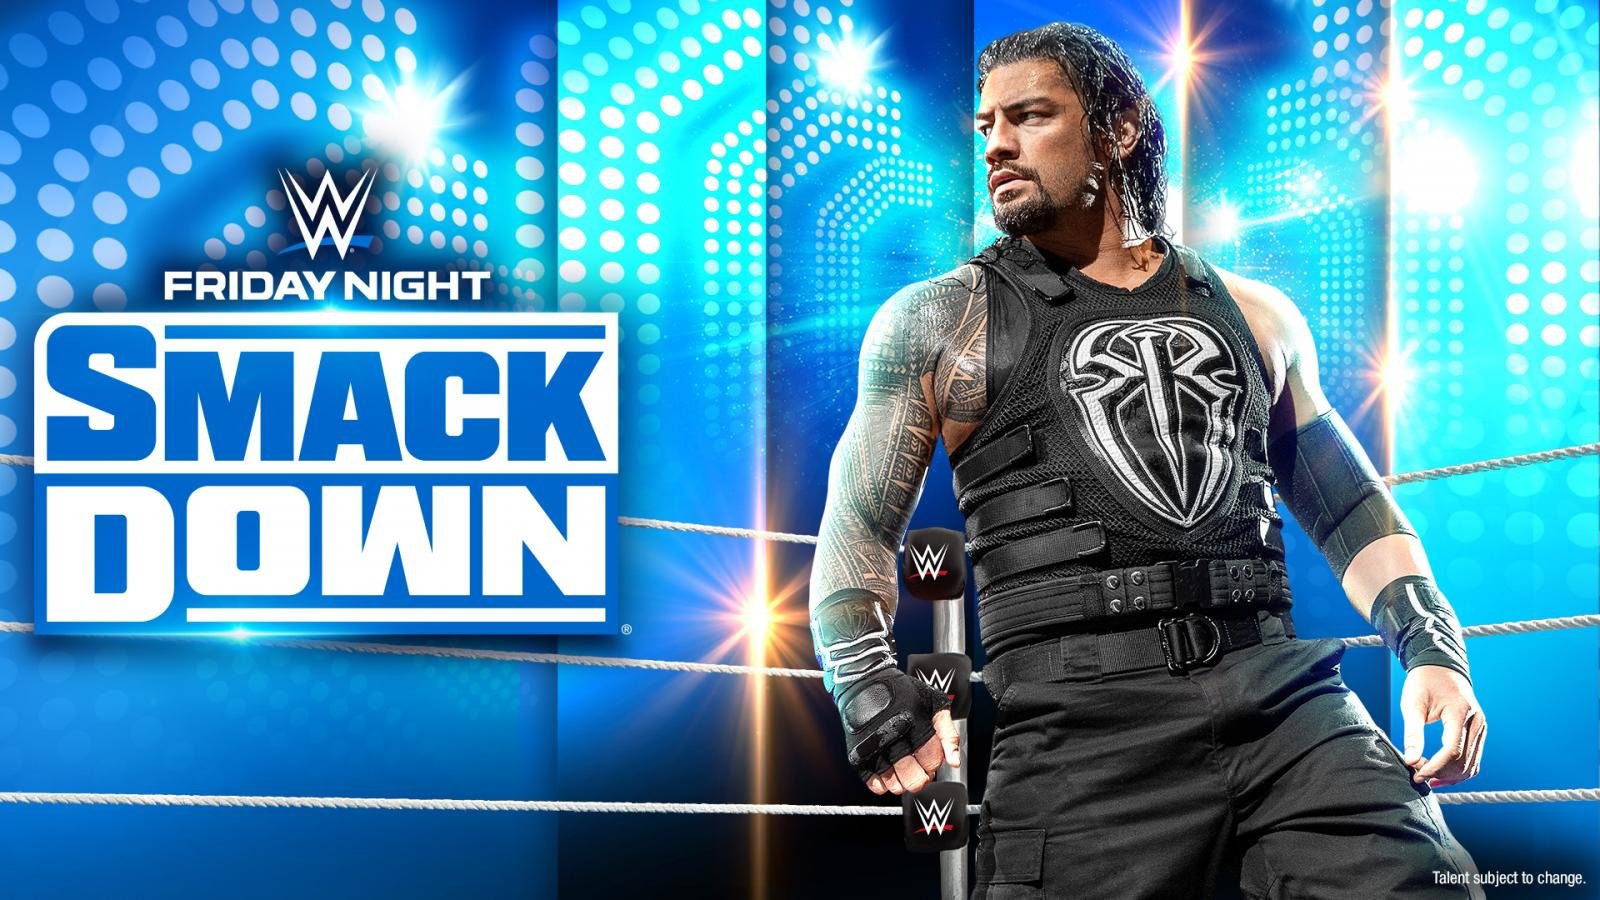 WWE SmackDown Preview For Tonight: The Demon To Appear?, Extreme Rules Build, More